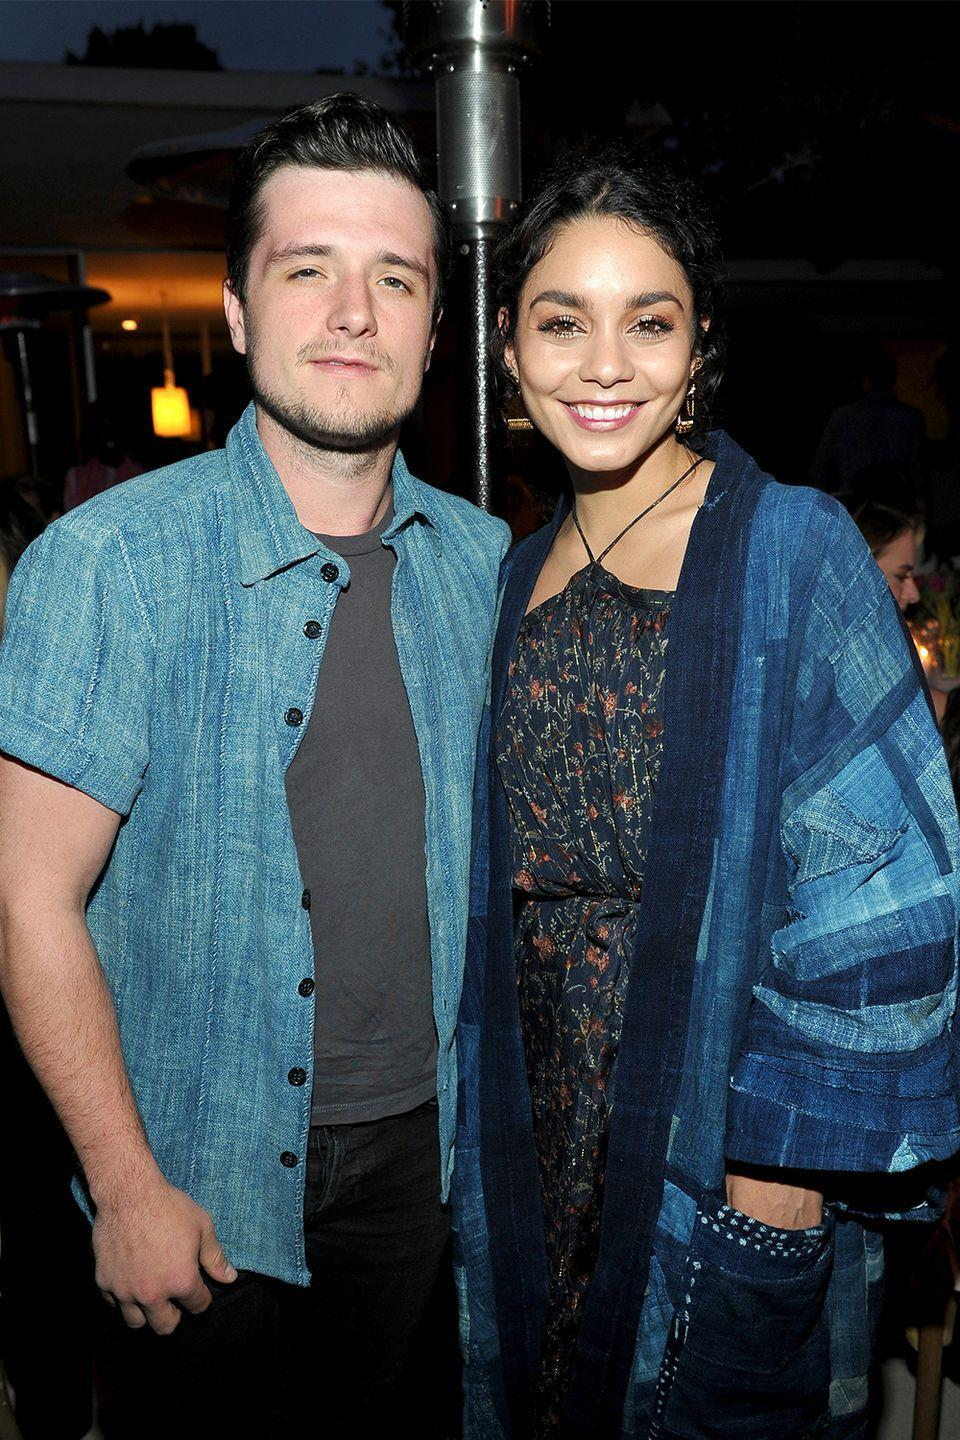 """<p>Shortly after splitting with her <em>High School Musical </em>co-star Zac Efron, Vanessa Hudgens reportedly began dating her <em>Journey 2: The Mysterious Island</em> co-star Josh Hutcherson. However, the relationship didn't last long.</p><p>When asked how long they'd been dating <a href=""""https://www.youtube.com/watch?time_continue=220&v=I_zc4a0kGkA"""" rel=""""nofollow noopener"""" target=""""_blank"""" data-ylk=""""slk:in an interview"""" class=""""link rapid-noclick-resp"""">in an interview</a> on the Australian version of <em>TODAY, </em>Hutcherson confirmed they once dated. """"We're not…No. We were at one point, but she broke my heart,"""" <span class=""""redactor-unlink"""">Josh joked</span>. """"I'm just kidding. That was a while ago, we're just really good friends now.""""</p>"""